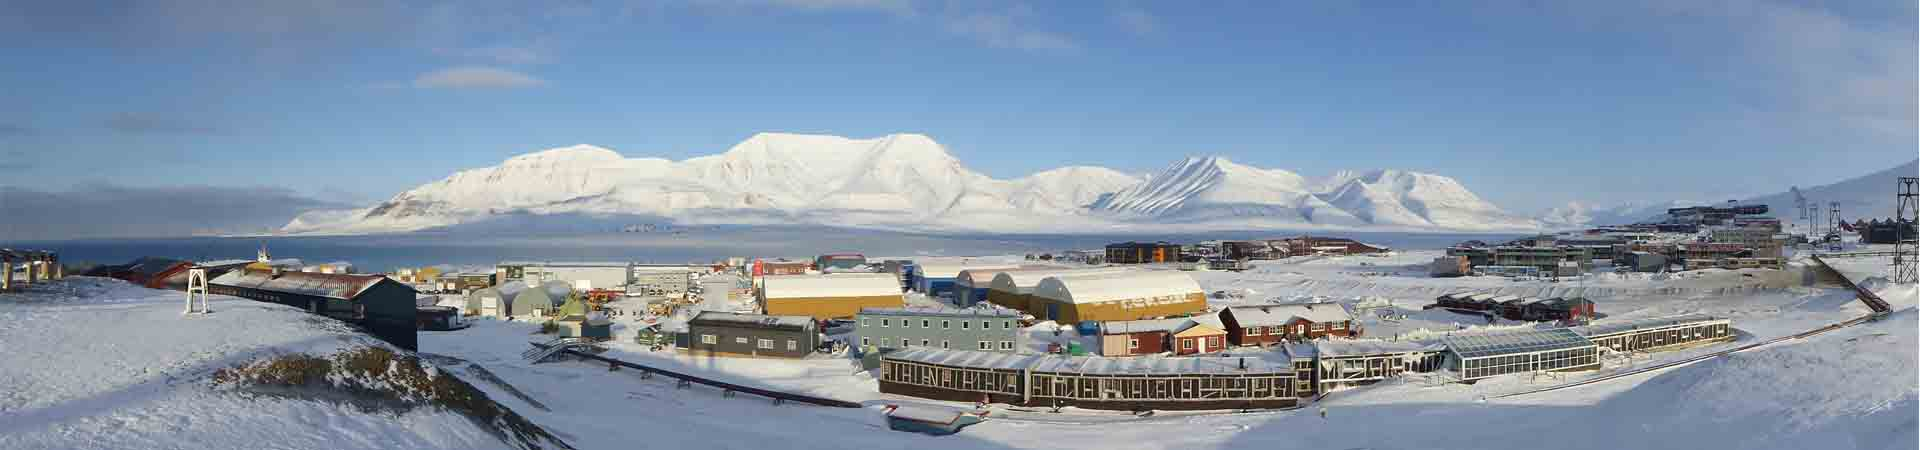 Photo of the Svalbard town of Longyearbyen where the students stay